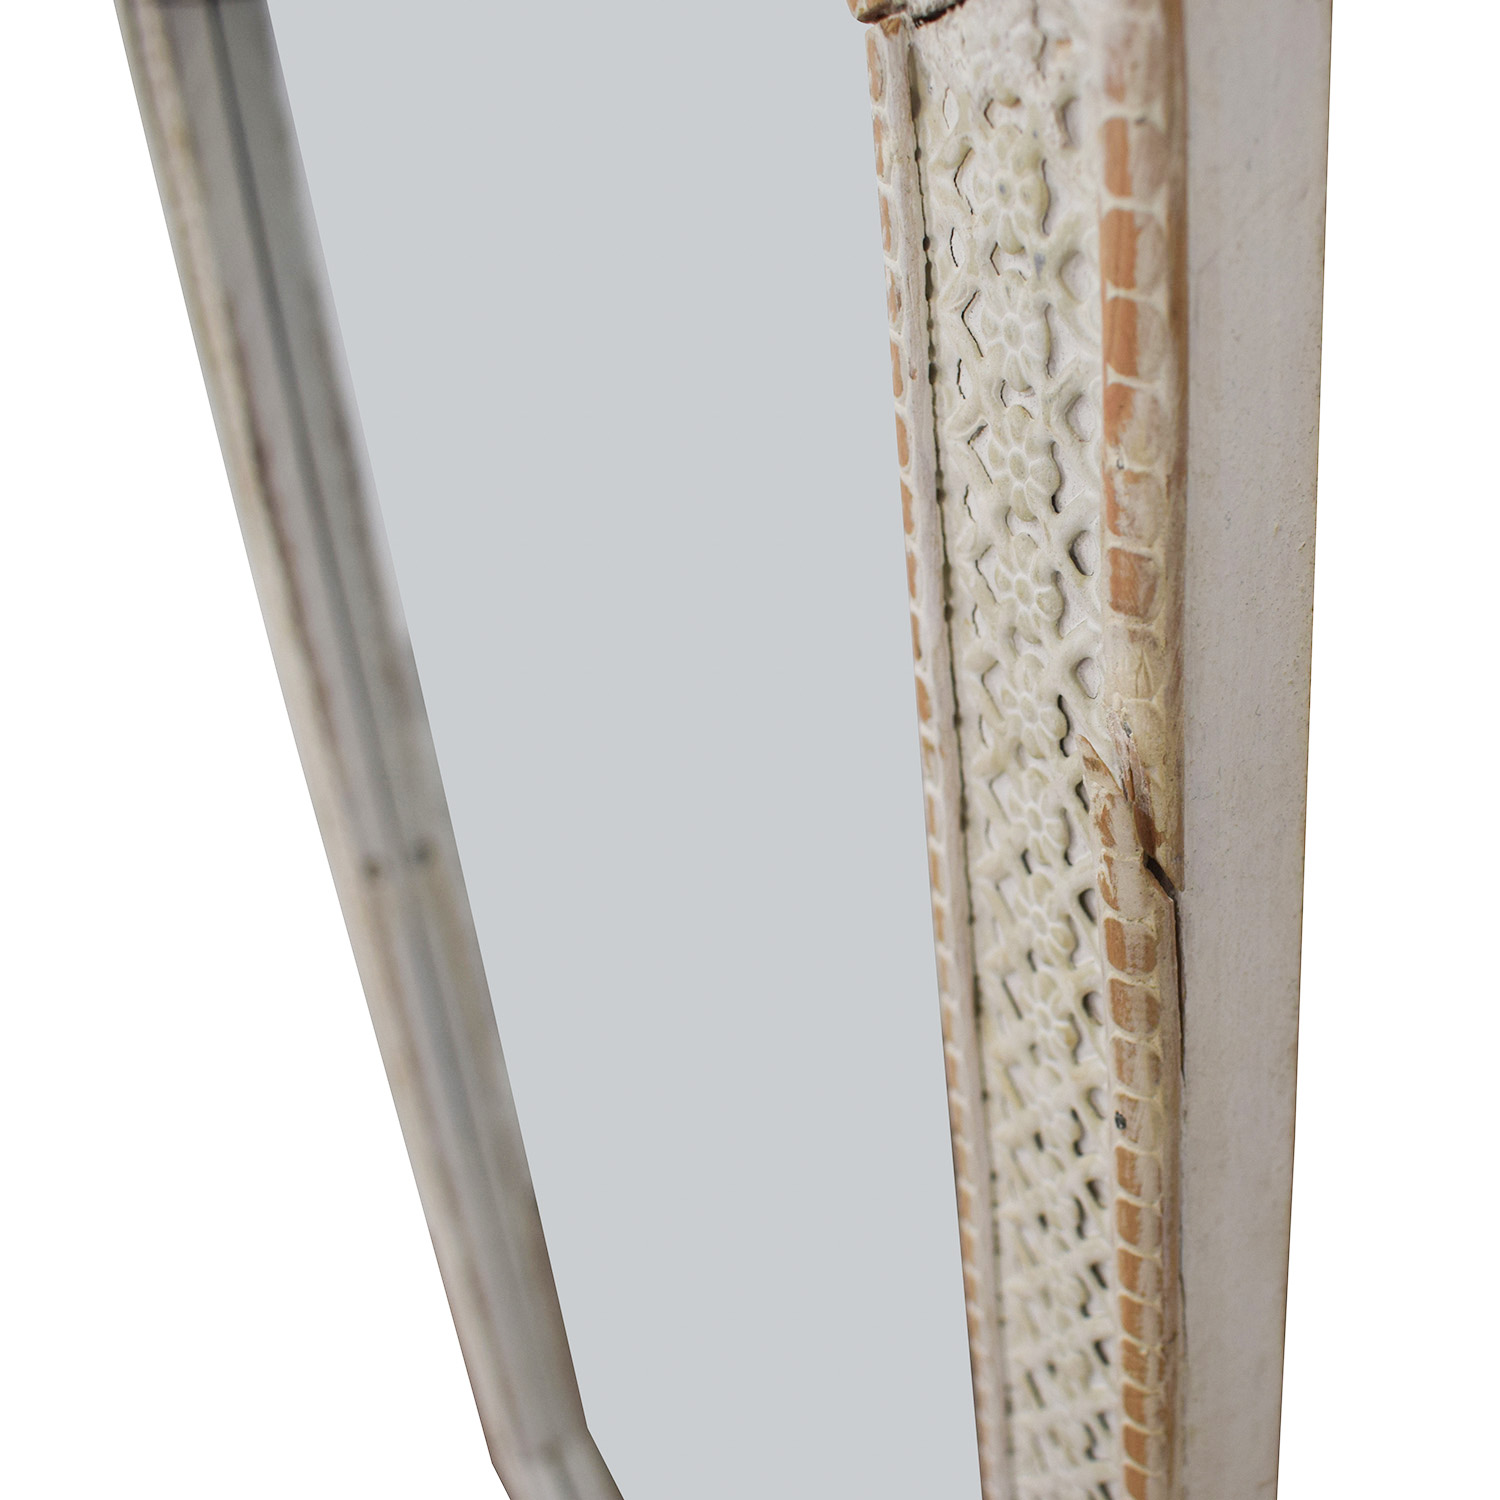 Distressed White Indian Lattice Wall Mirror / Mirrors